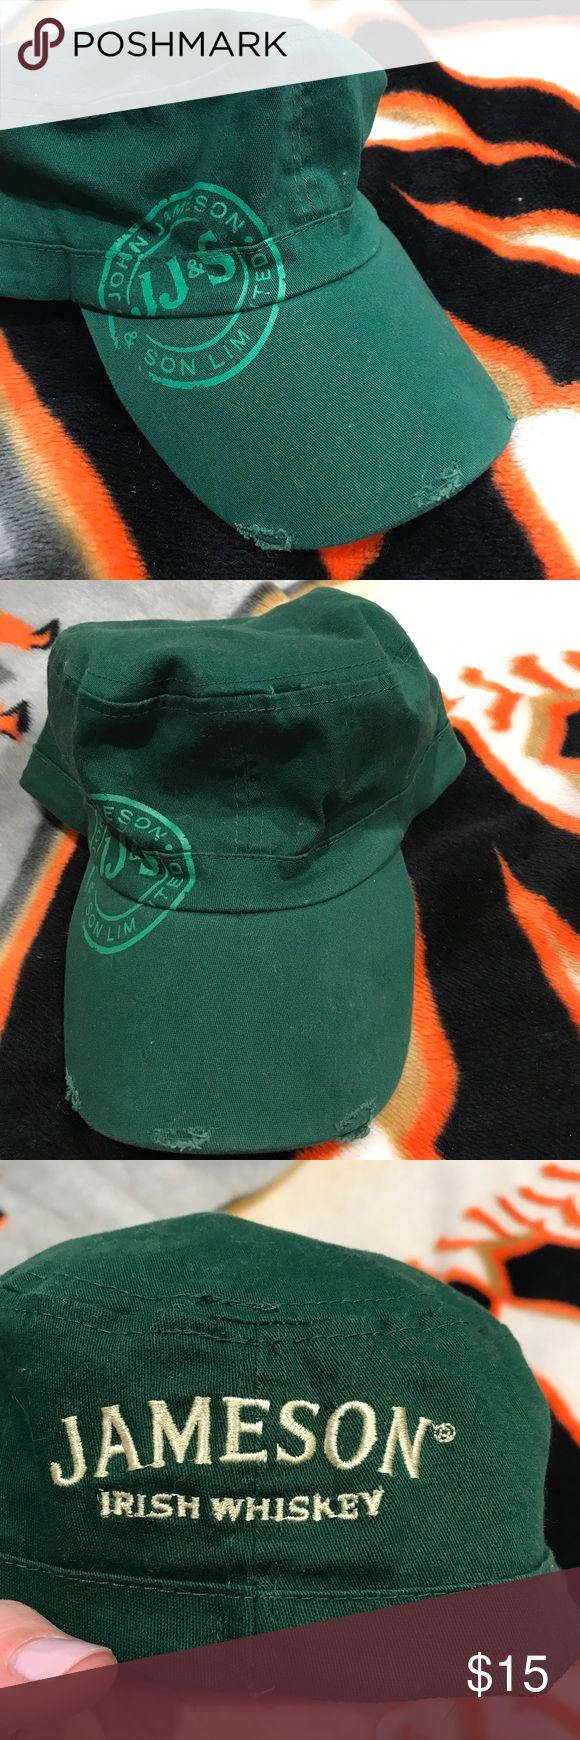 Jameson Irish Whiskey hat Super cute Jameson Irish Whiskey hat.. only worn once for St Patrick's Day.. super comfy and has an elastic band to help with fit.. came with the tears on the bill of the hat for a worn look..comes from a smoke free home Accessories Hats